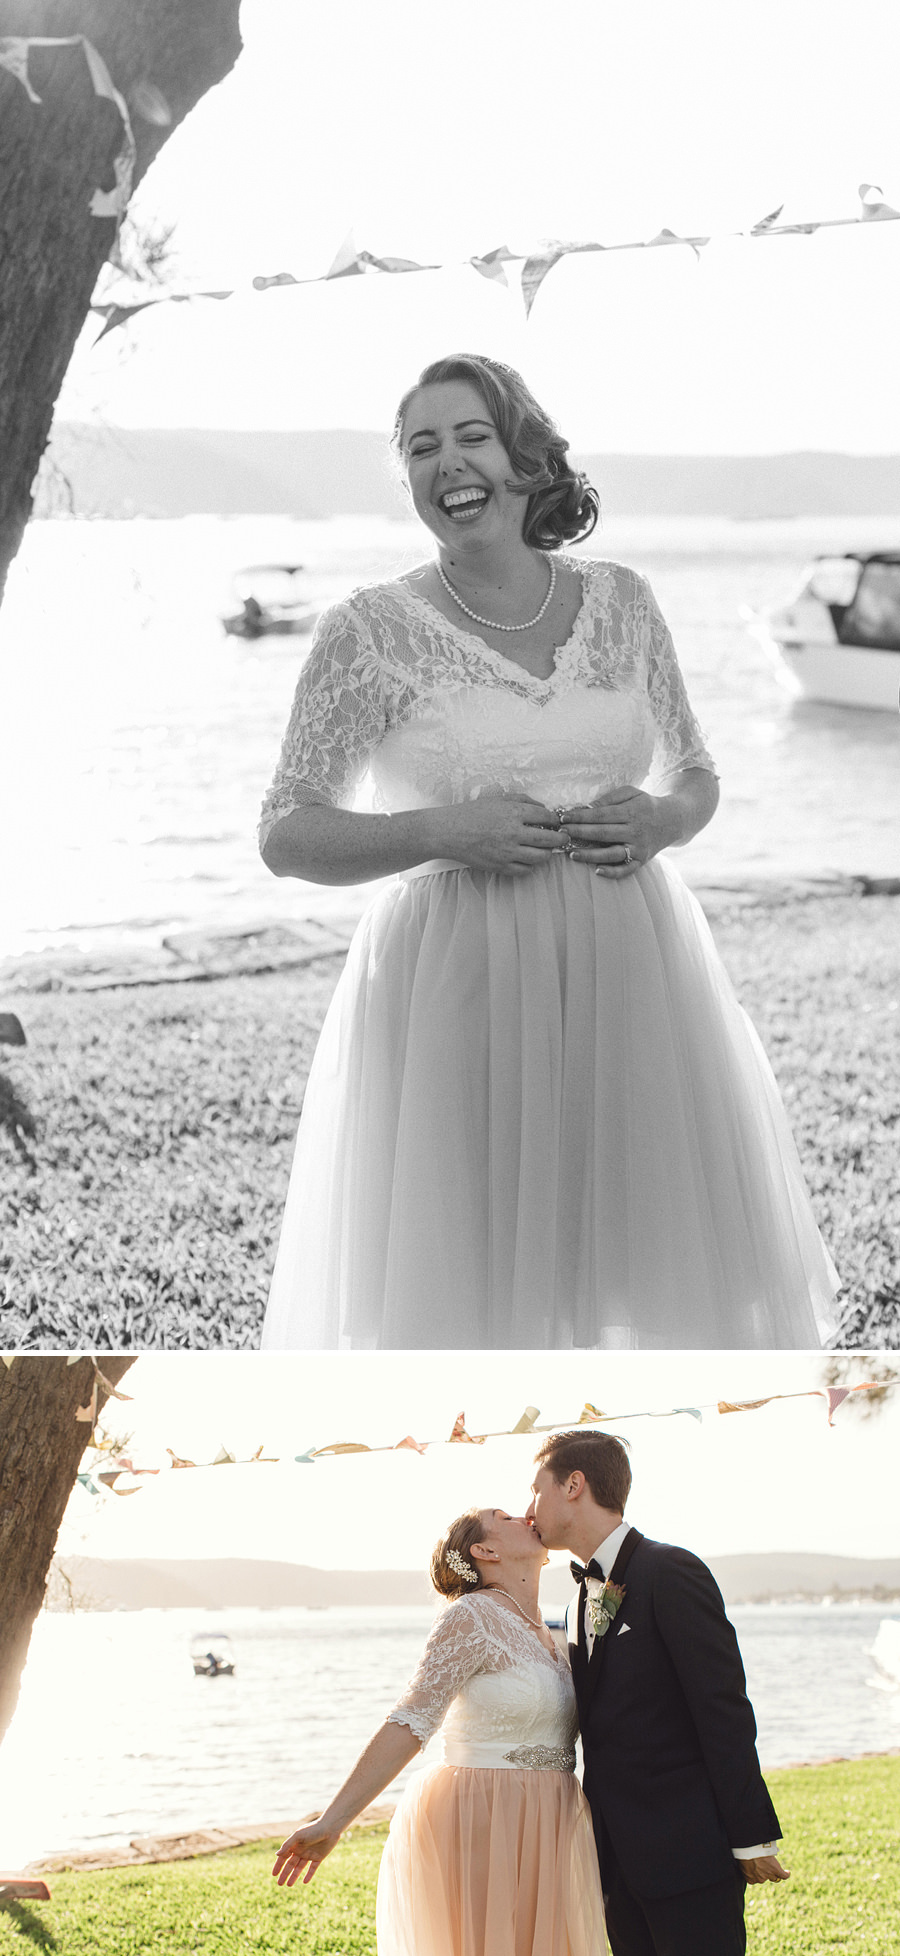 North Shore Wedding Photographer:Bride & Groom portraits